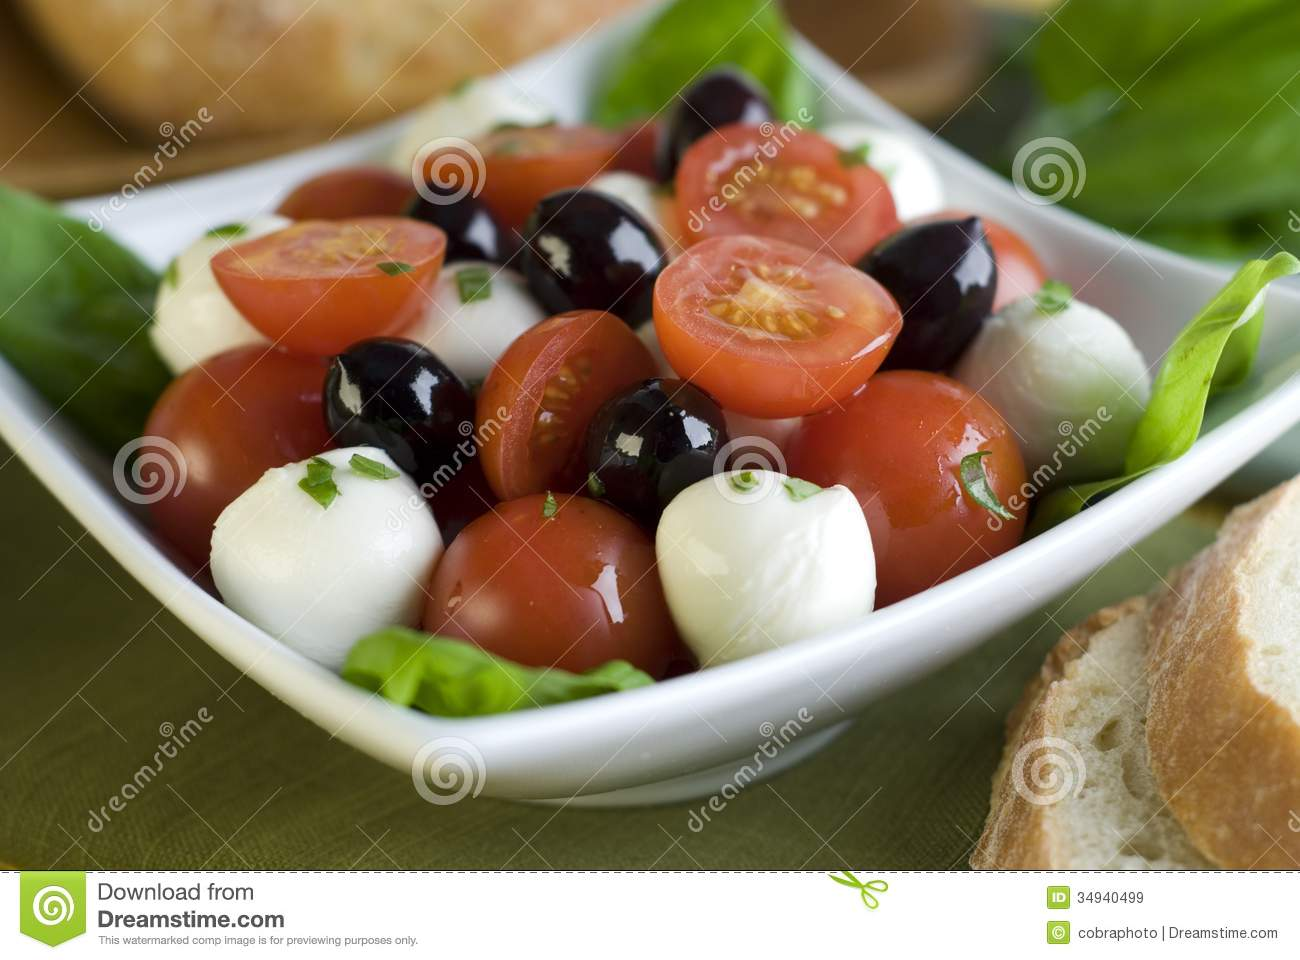 Fresh, healthy salad with tomato, mozzarella, basil and olives.